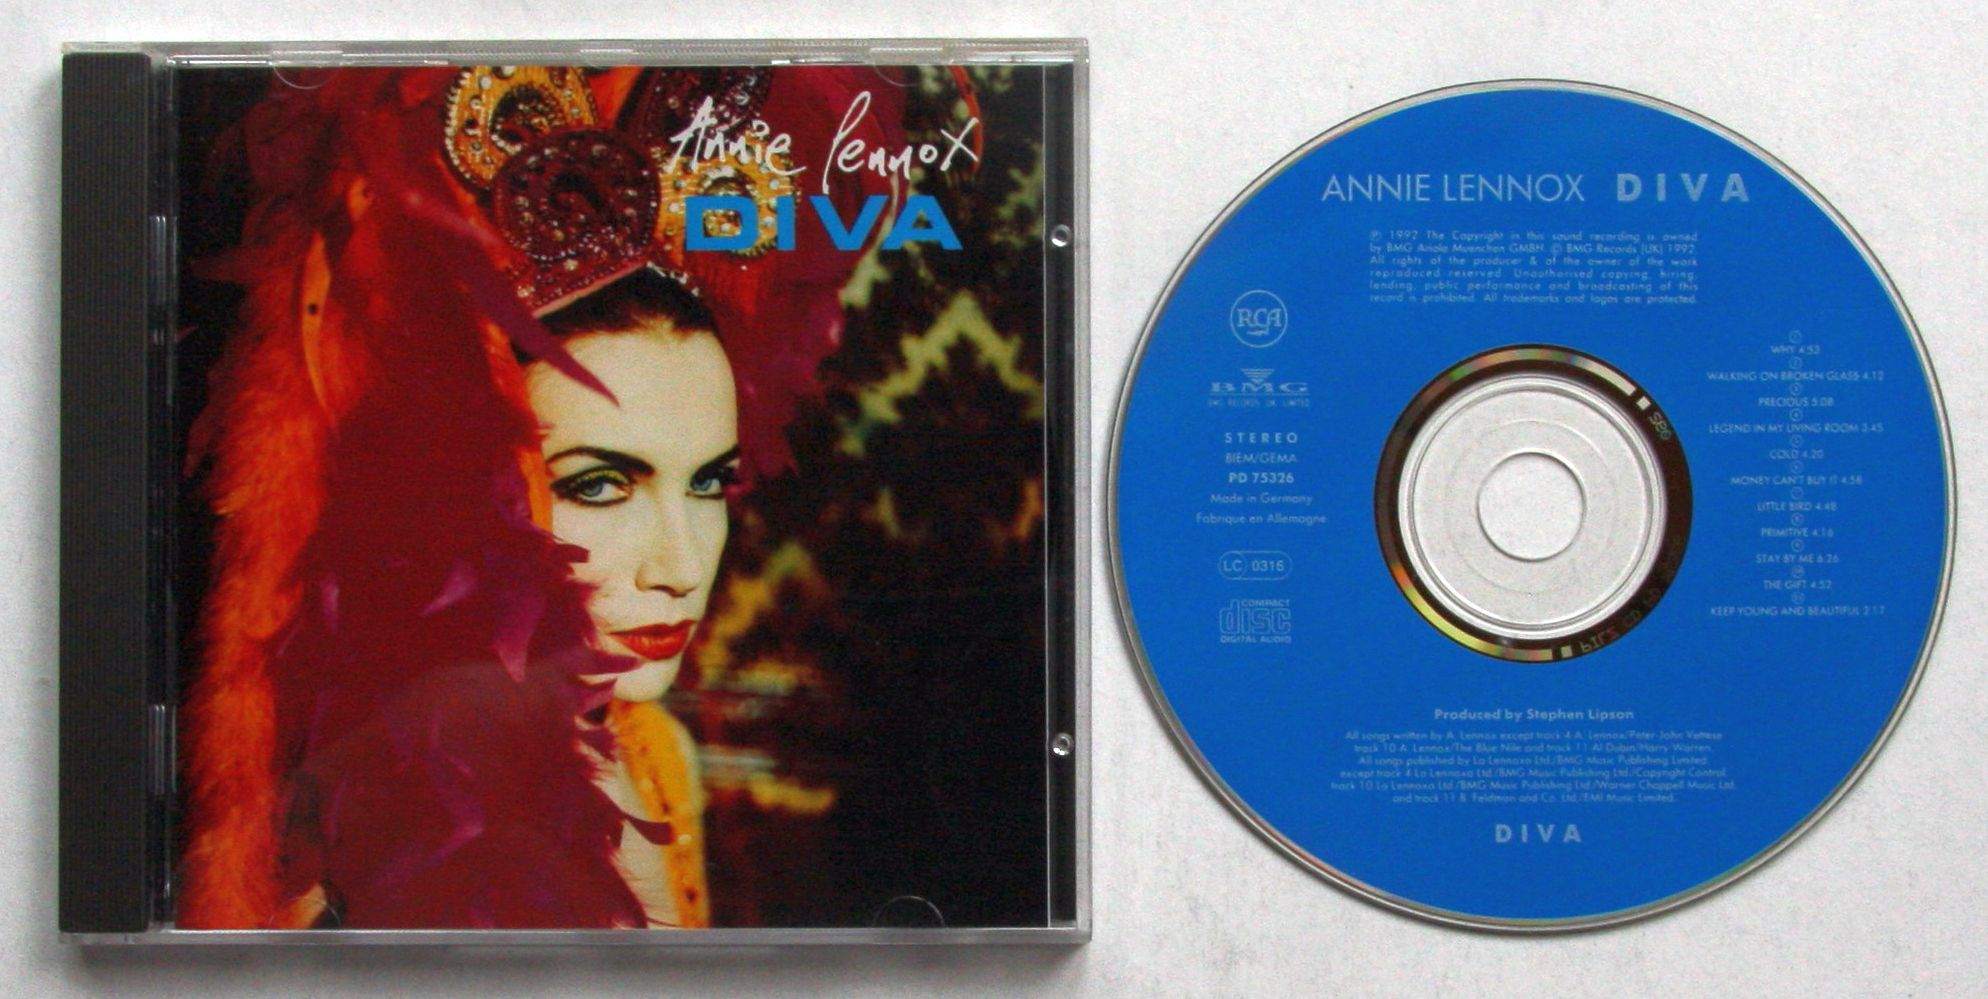 Annie lennox diva 1992 cd eurythmics ebay - Annie lennox diva album cover ...